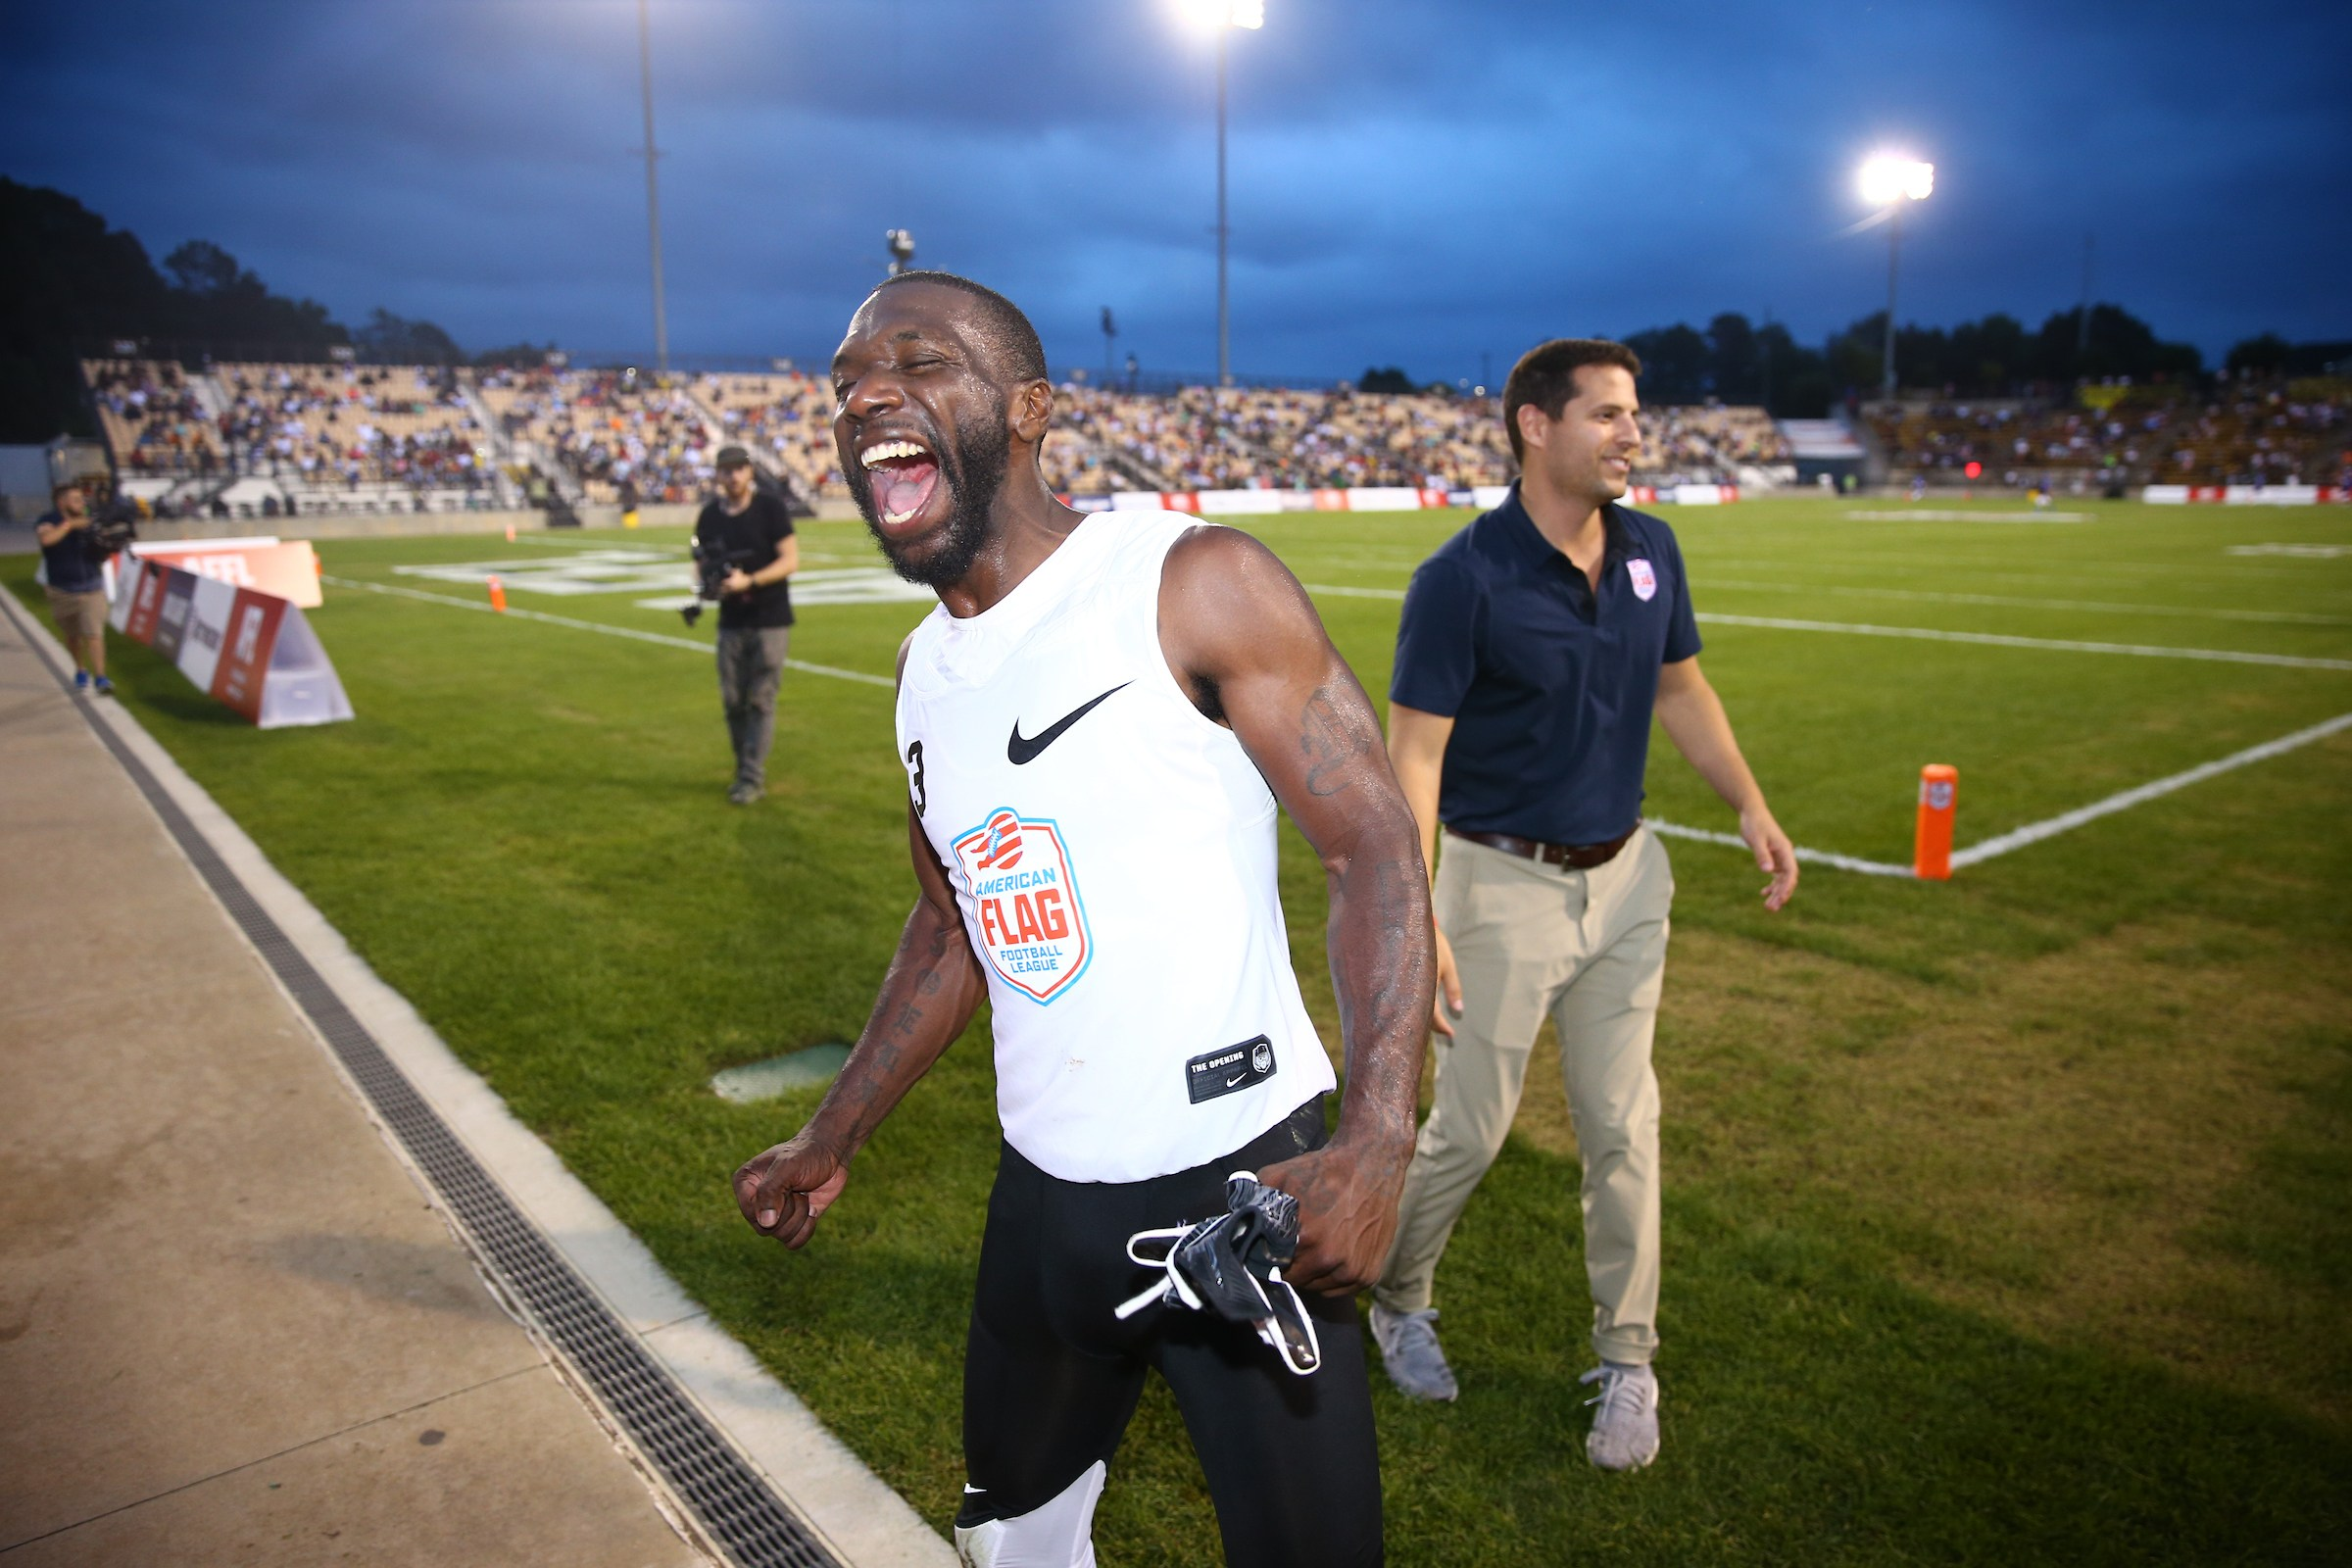 Fighting Cancer's Brandon McCray celebrates his team's win over Primetime at the American Flag Football League (AFFL) U.S. Open of Football tournament, Saturday, July 7, 2018 in Kennesaw, Ga. (Kevin D. Liles/AP Images for American Flag Football League)